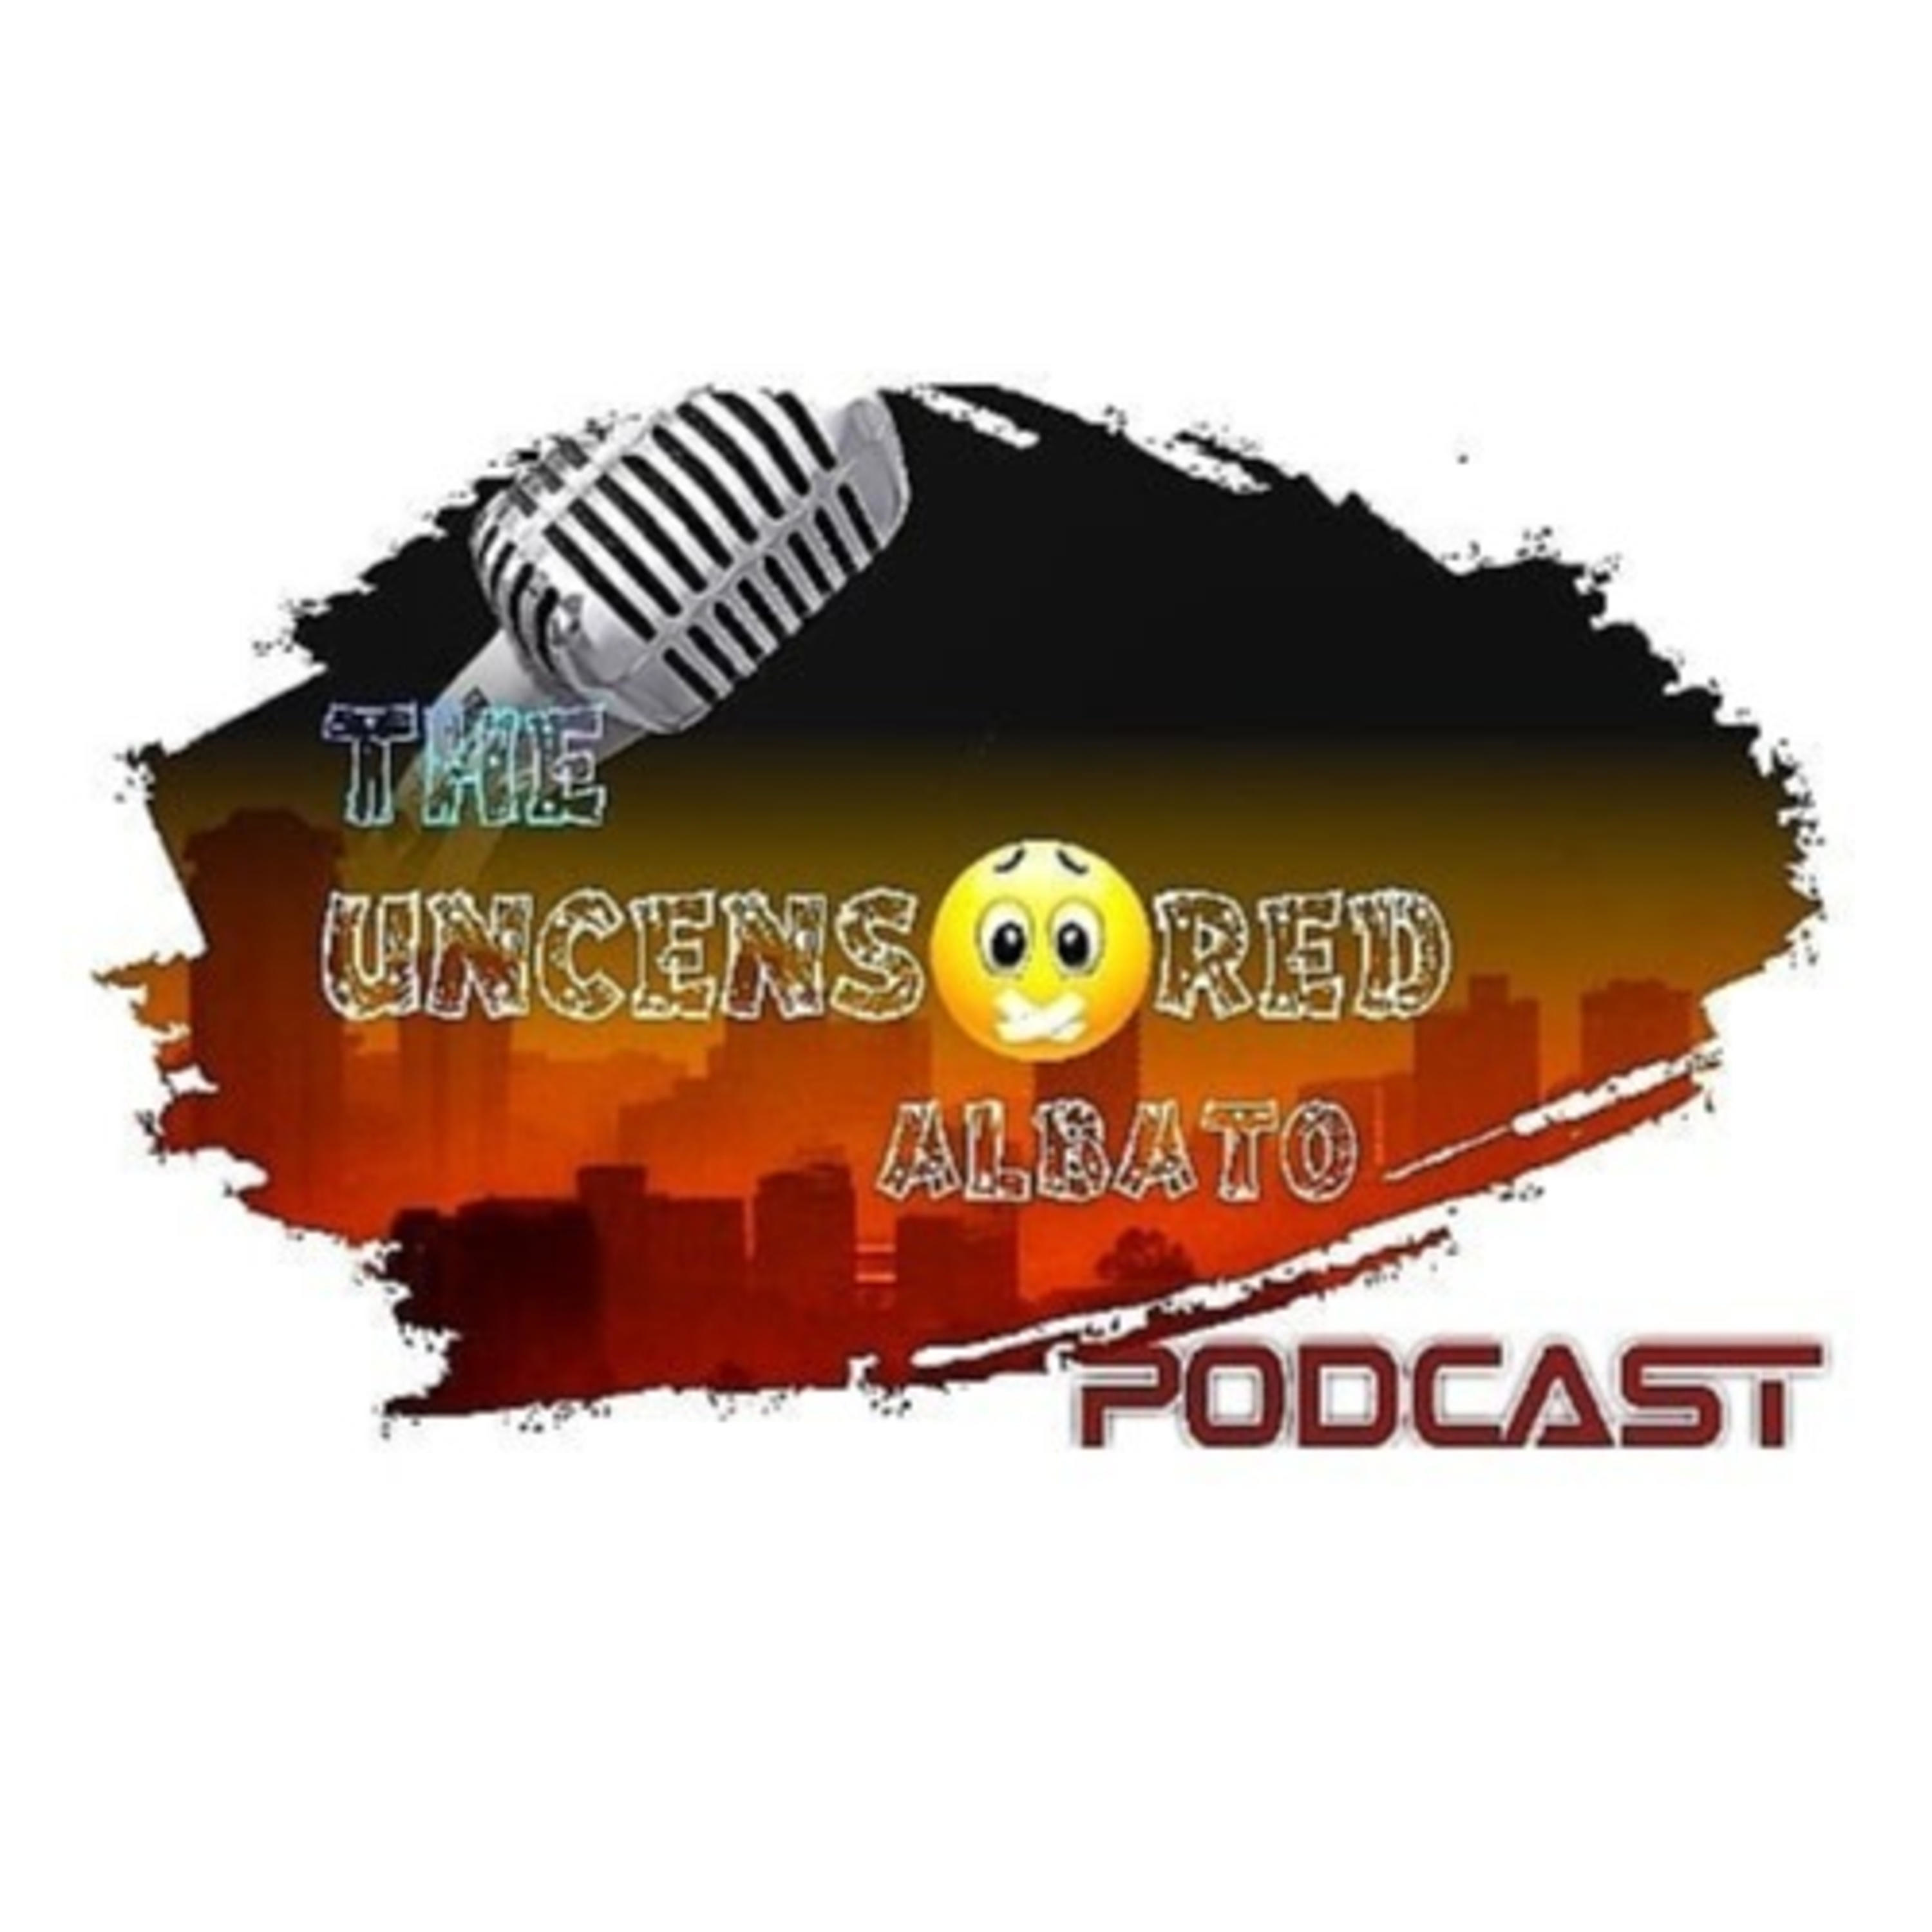 The Uncensored Albato Podcast podcast